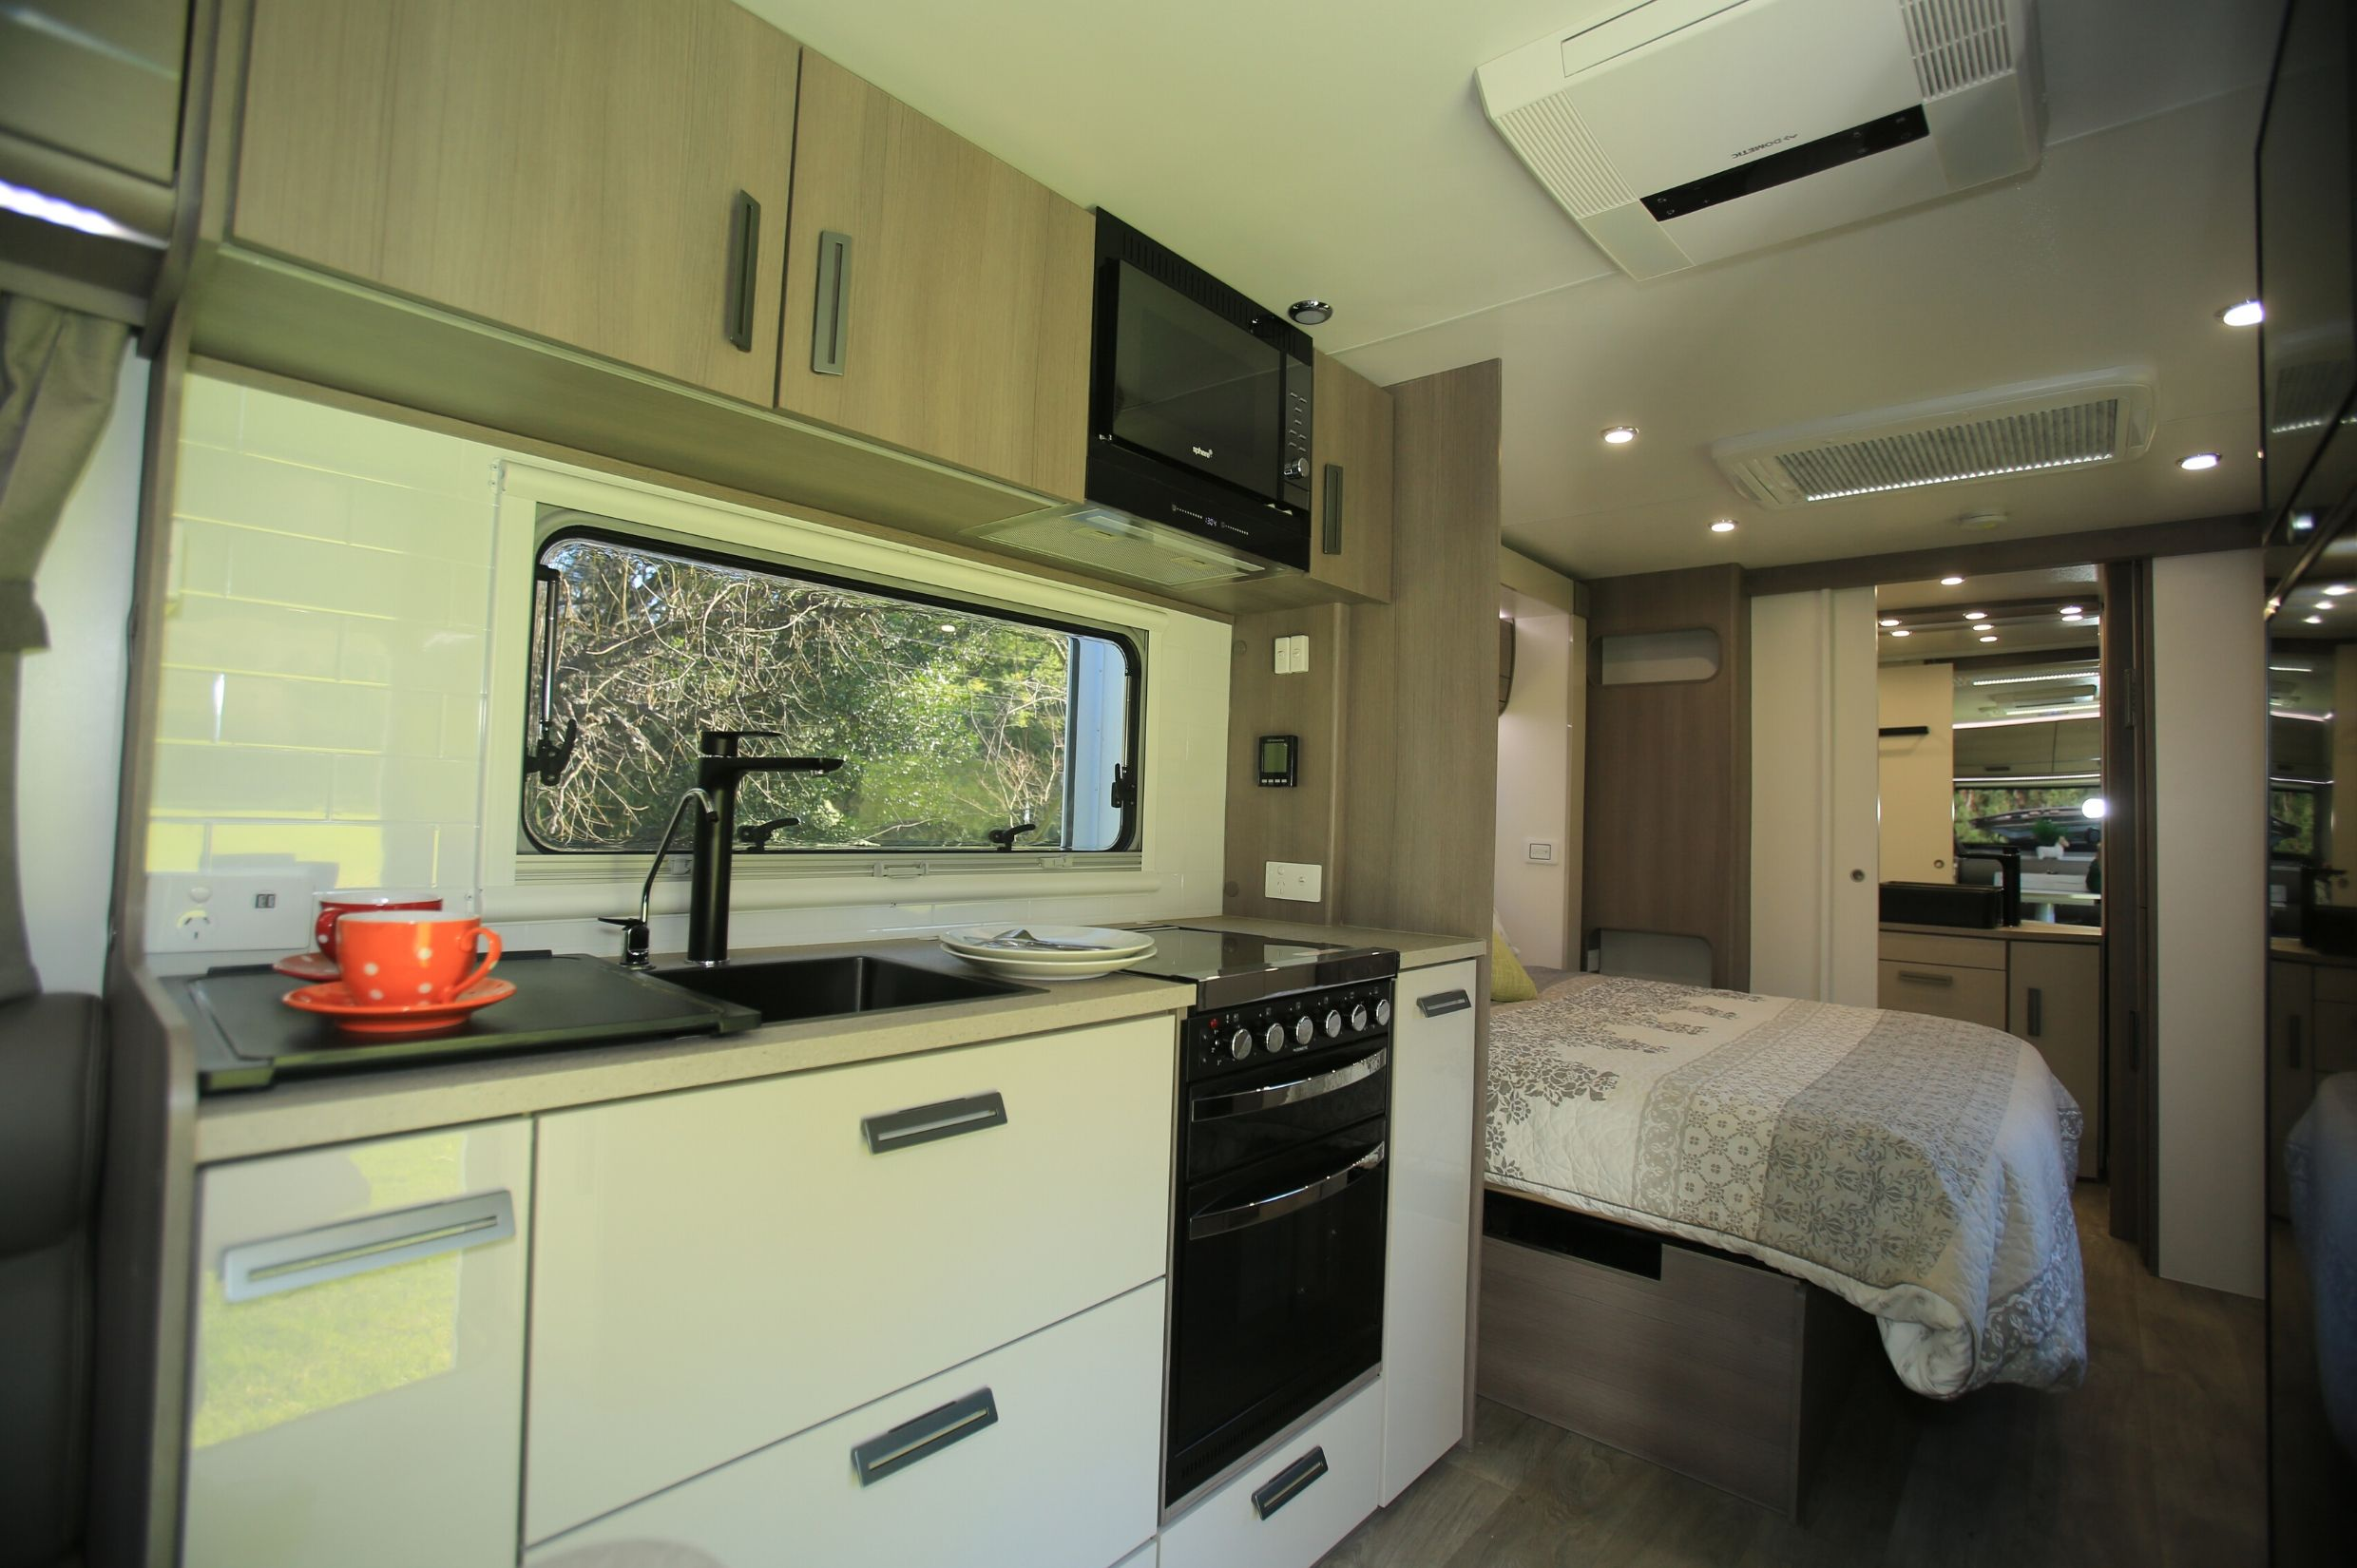 Jayco Silverline interior